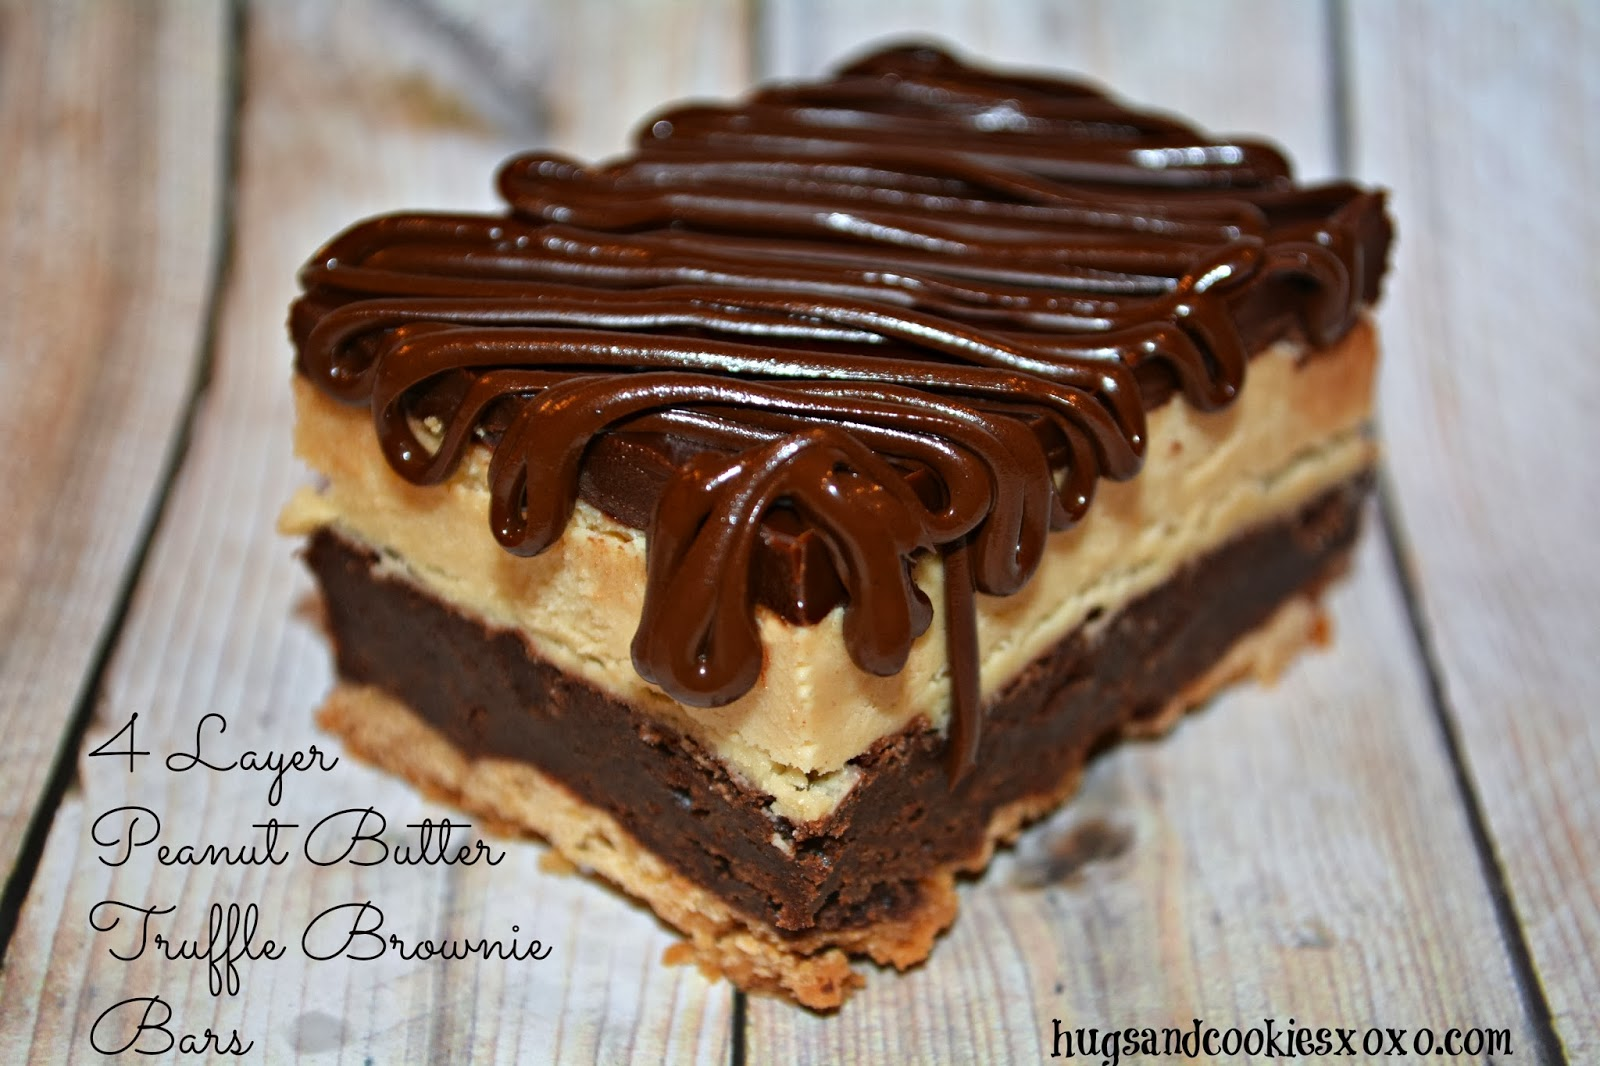 LAYER PEANUT BUTTER TRUFFLE BROWNIE BARS - Hugs and Cookies XOXO